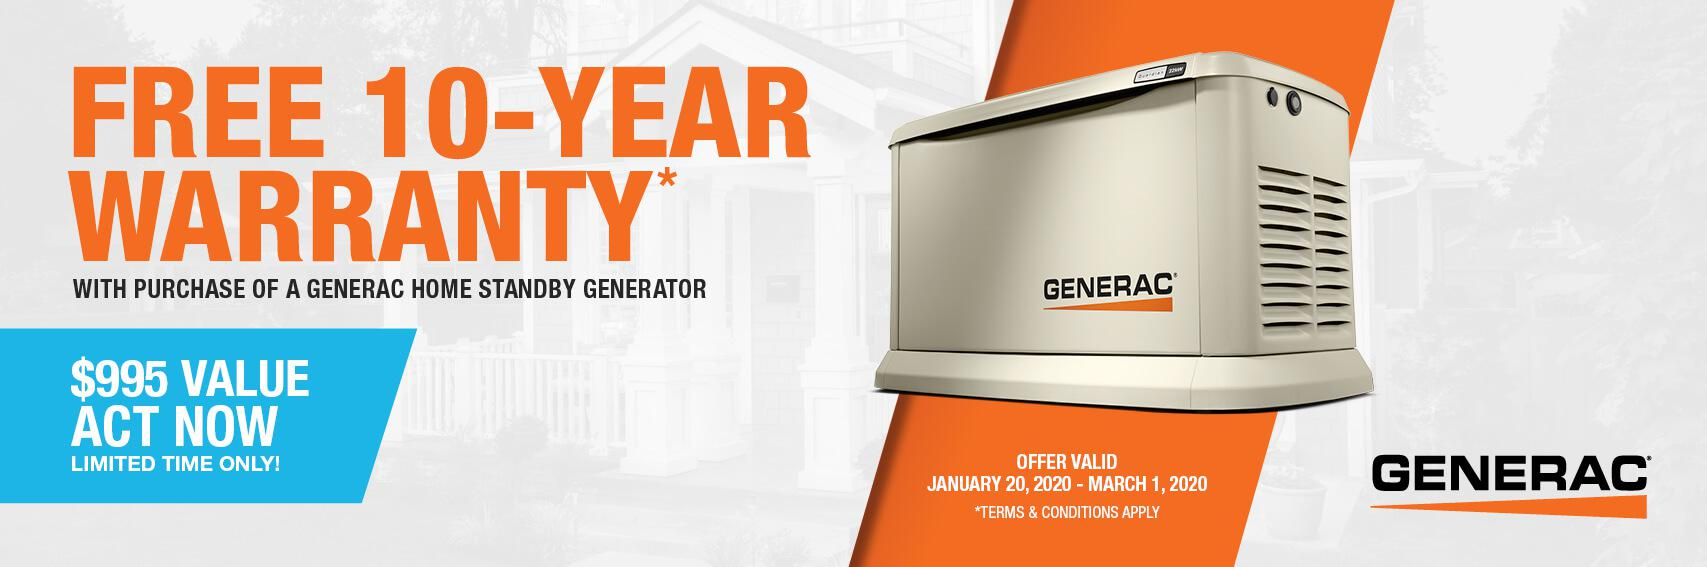 Homestandby Generator Deal | Warranty Offer | Generac Dealer | Houma, LA